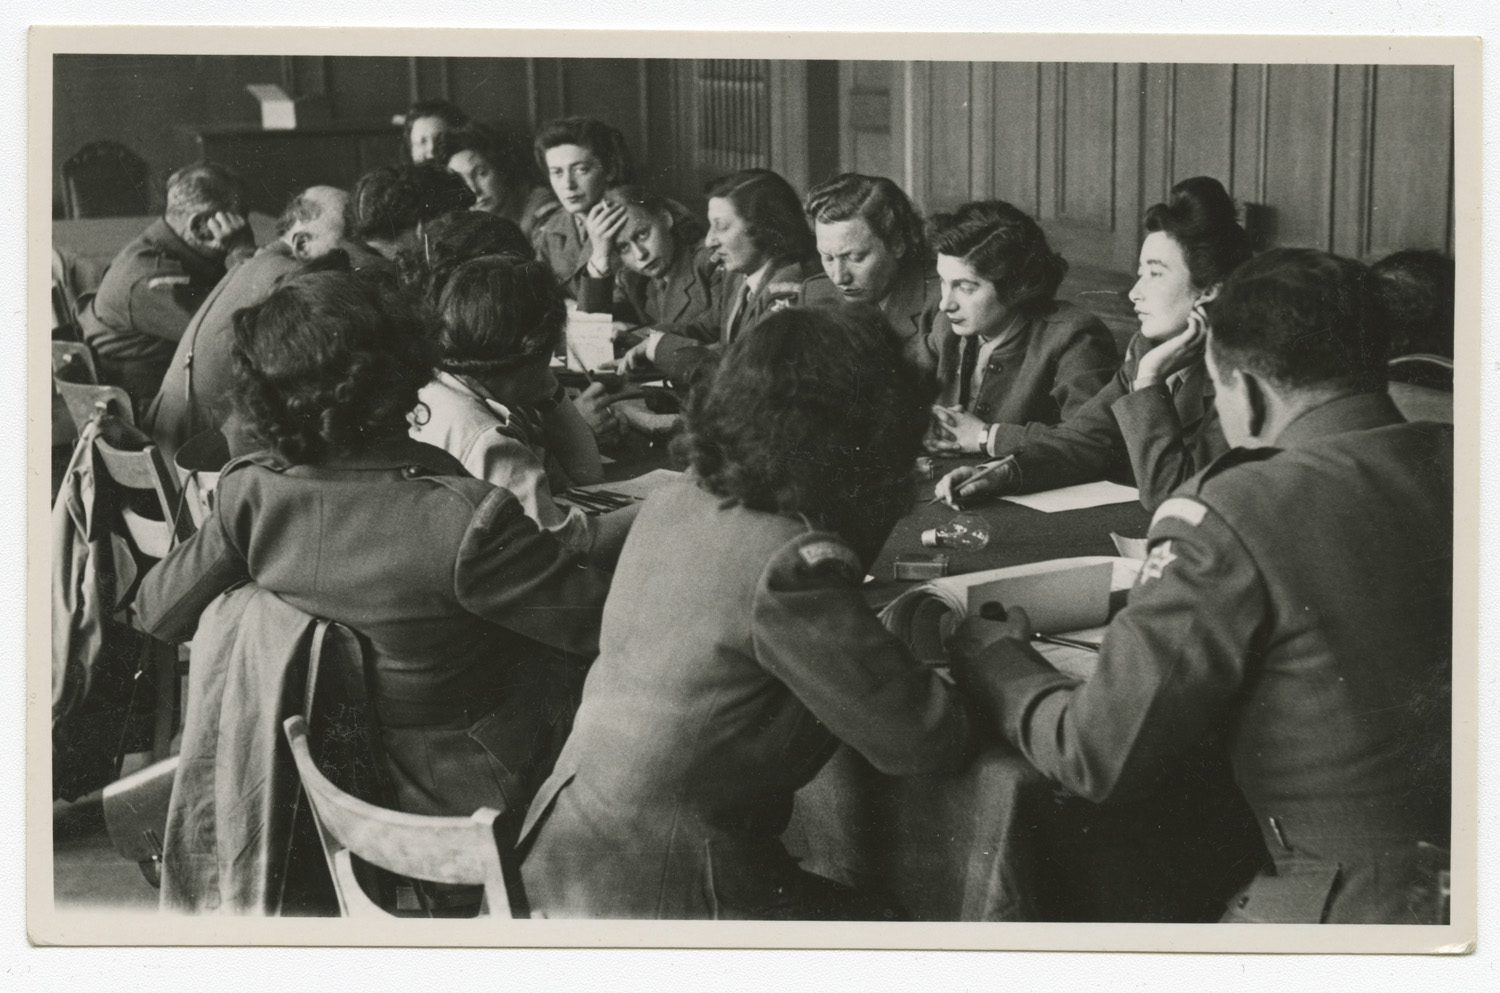 A metting of the Council of Voluntary Agencies held in Munich. The table is surronded mostly by women and Marie Malachowski is fourth from the top-right.